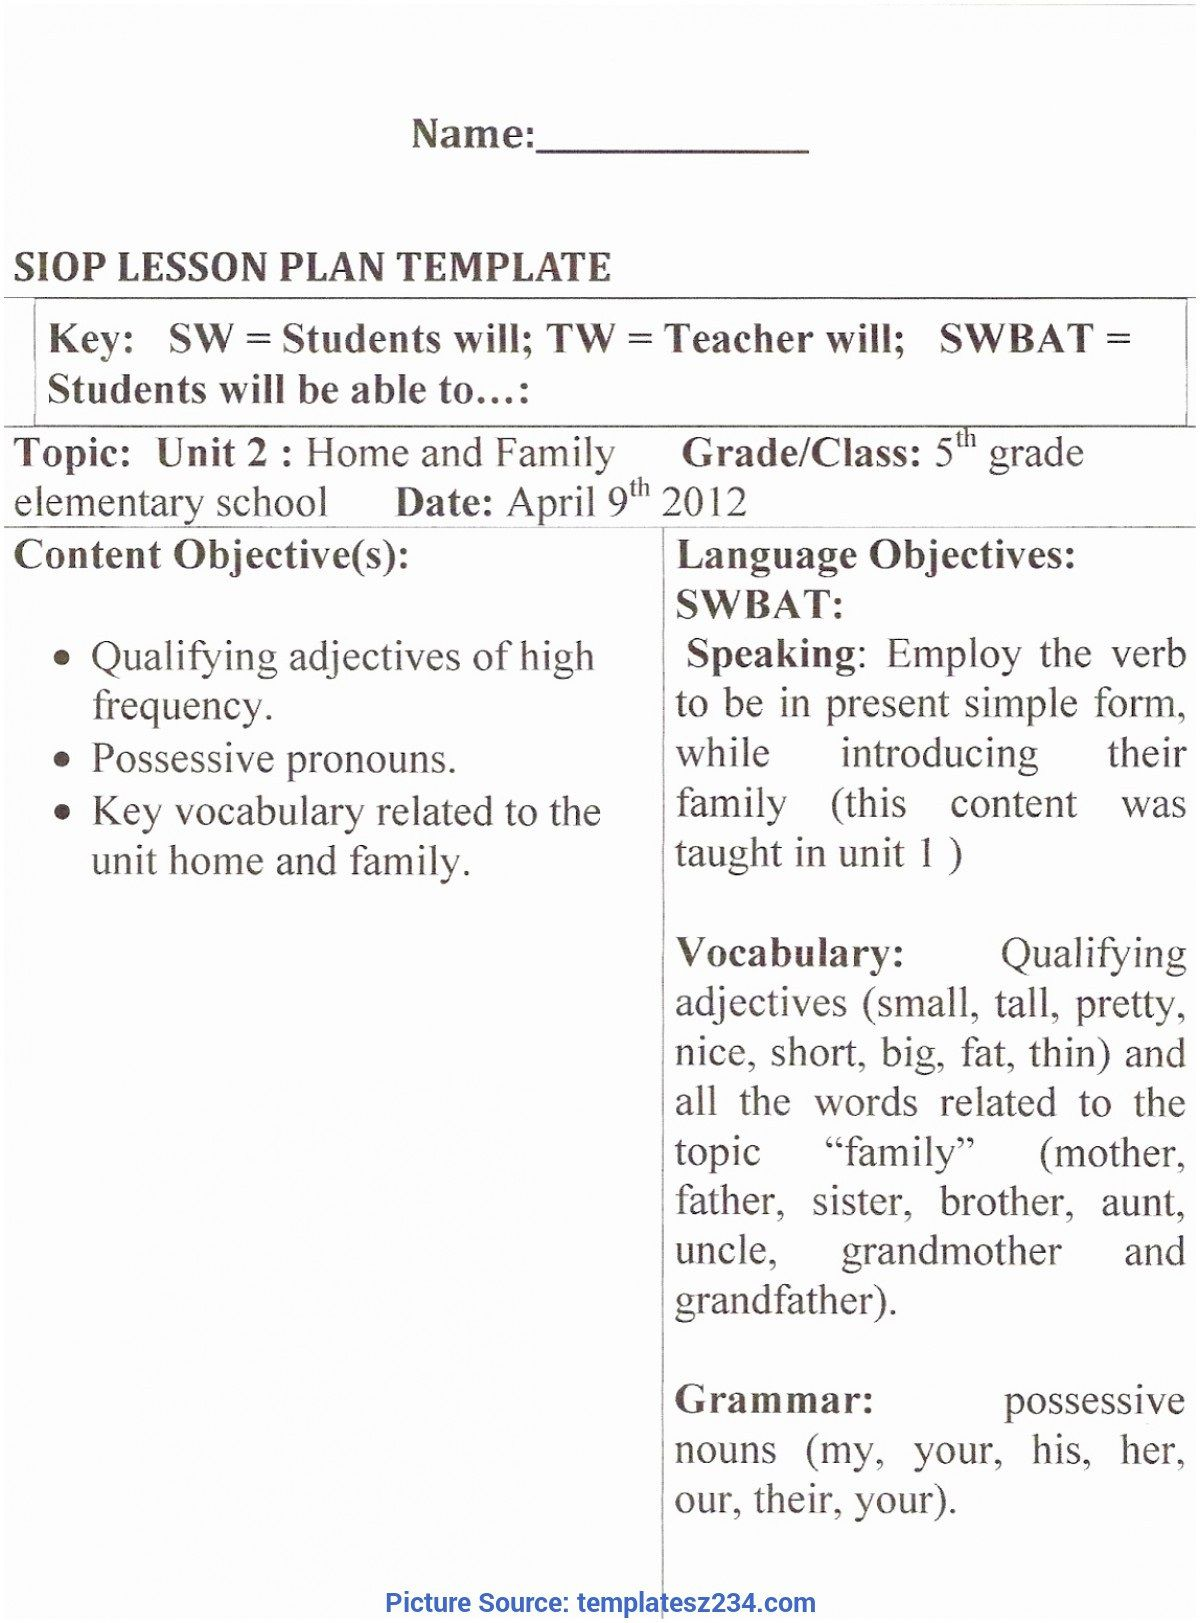 009 Impressive Siop Lesson Plan Template 1 Example Photo Full